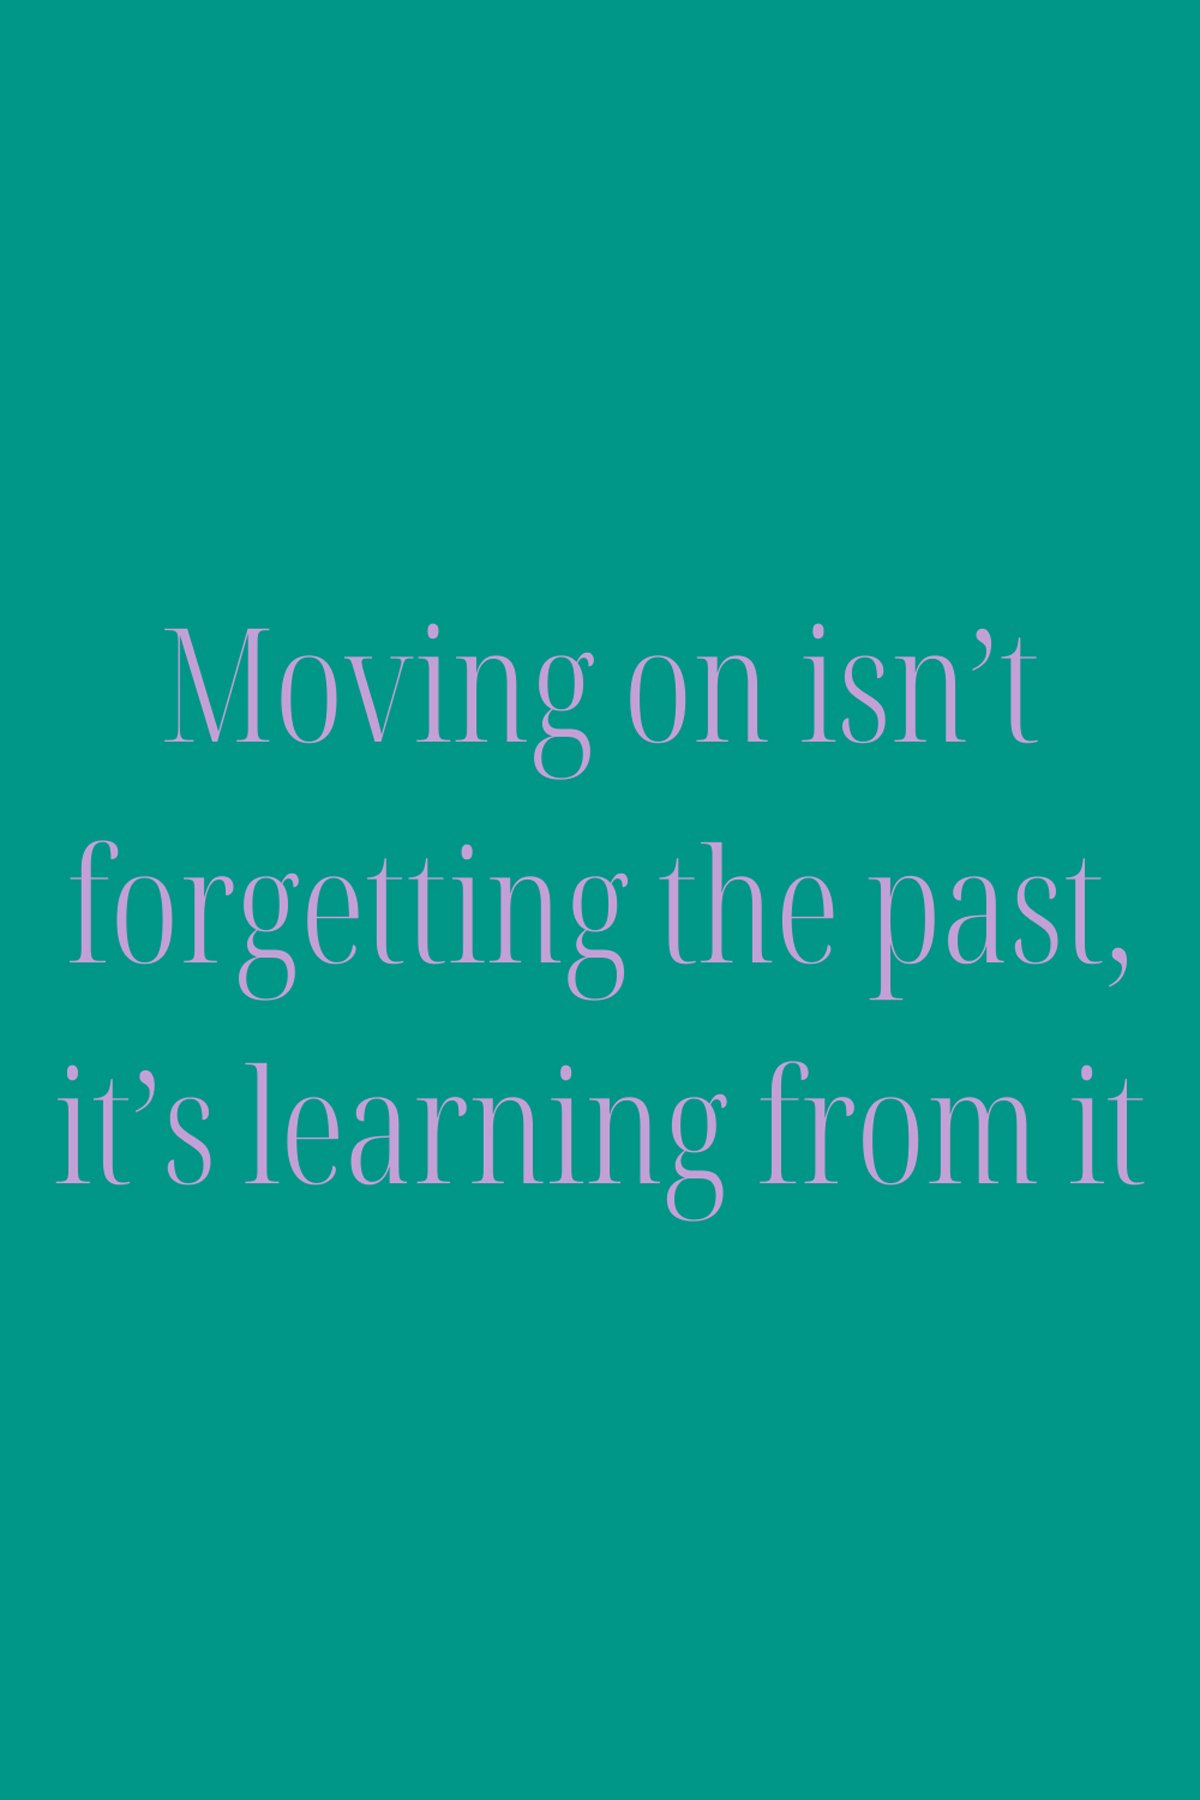 Past is Past Quotes